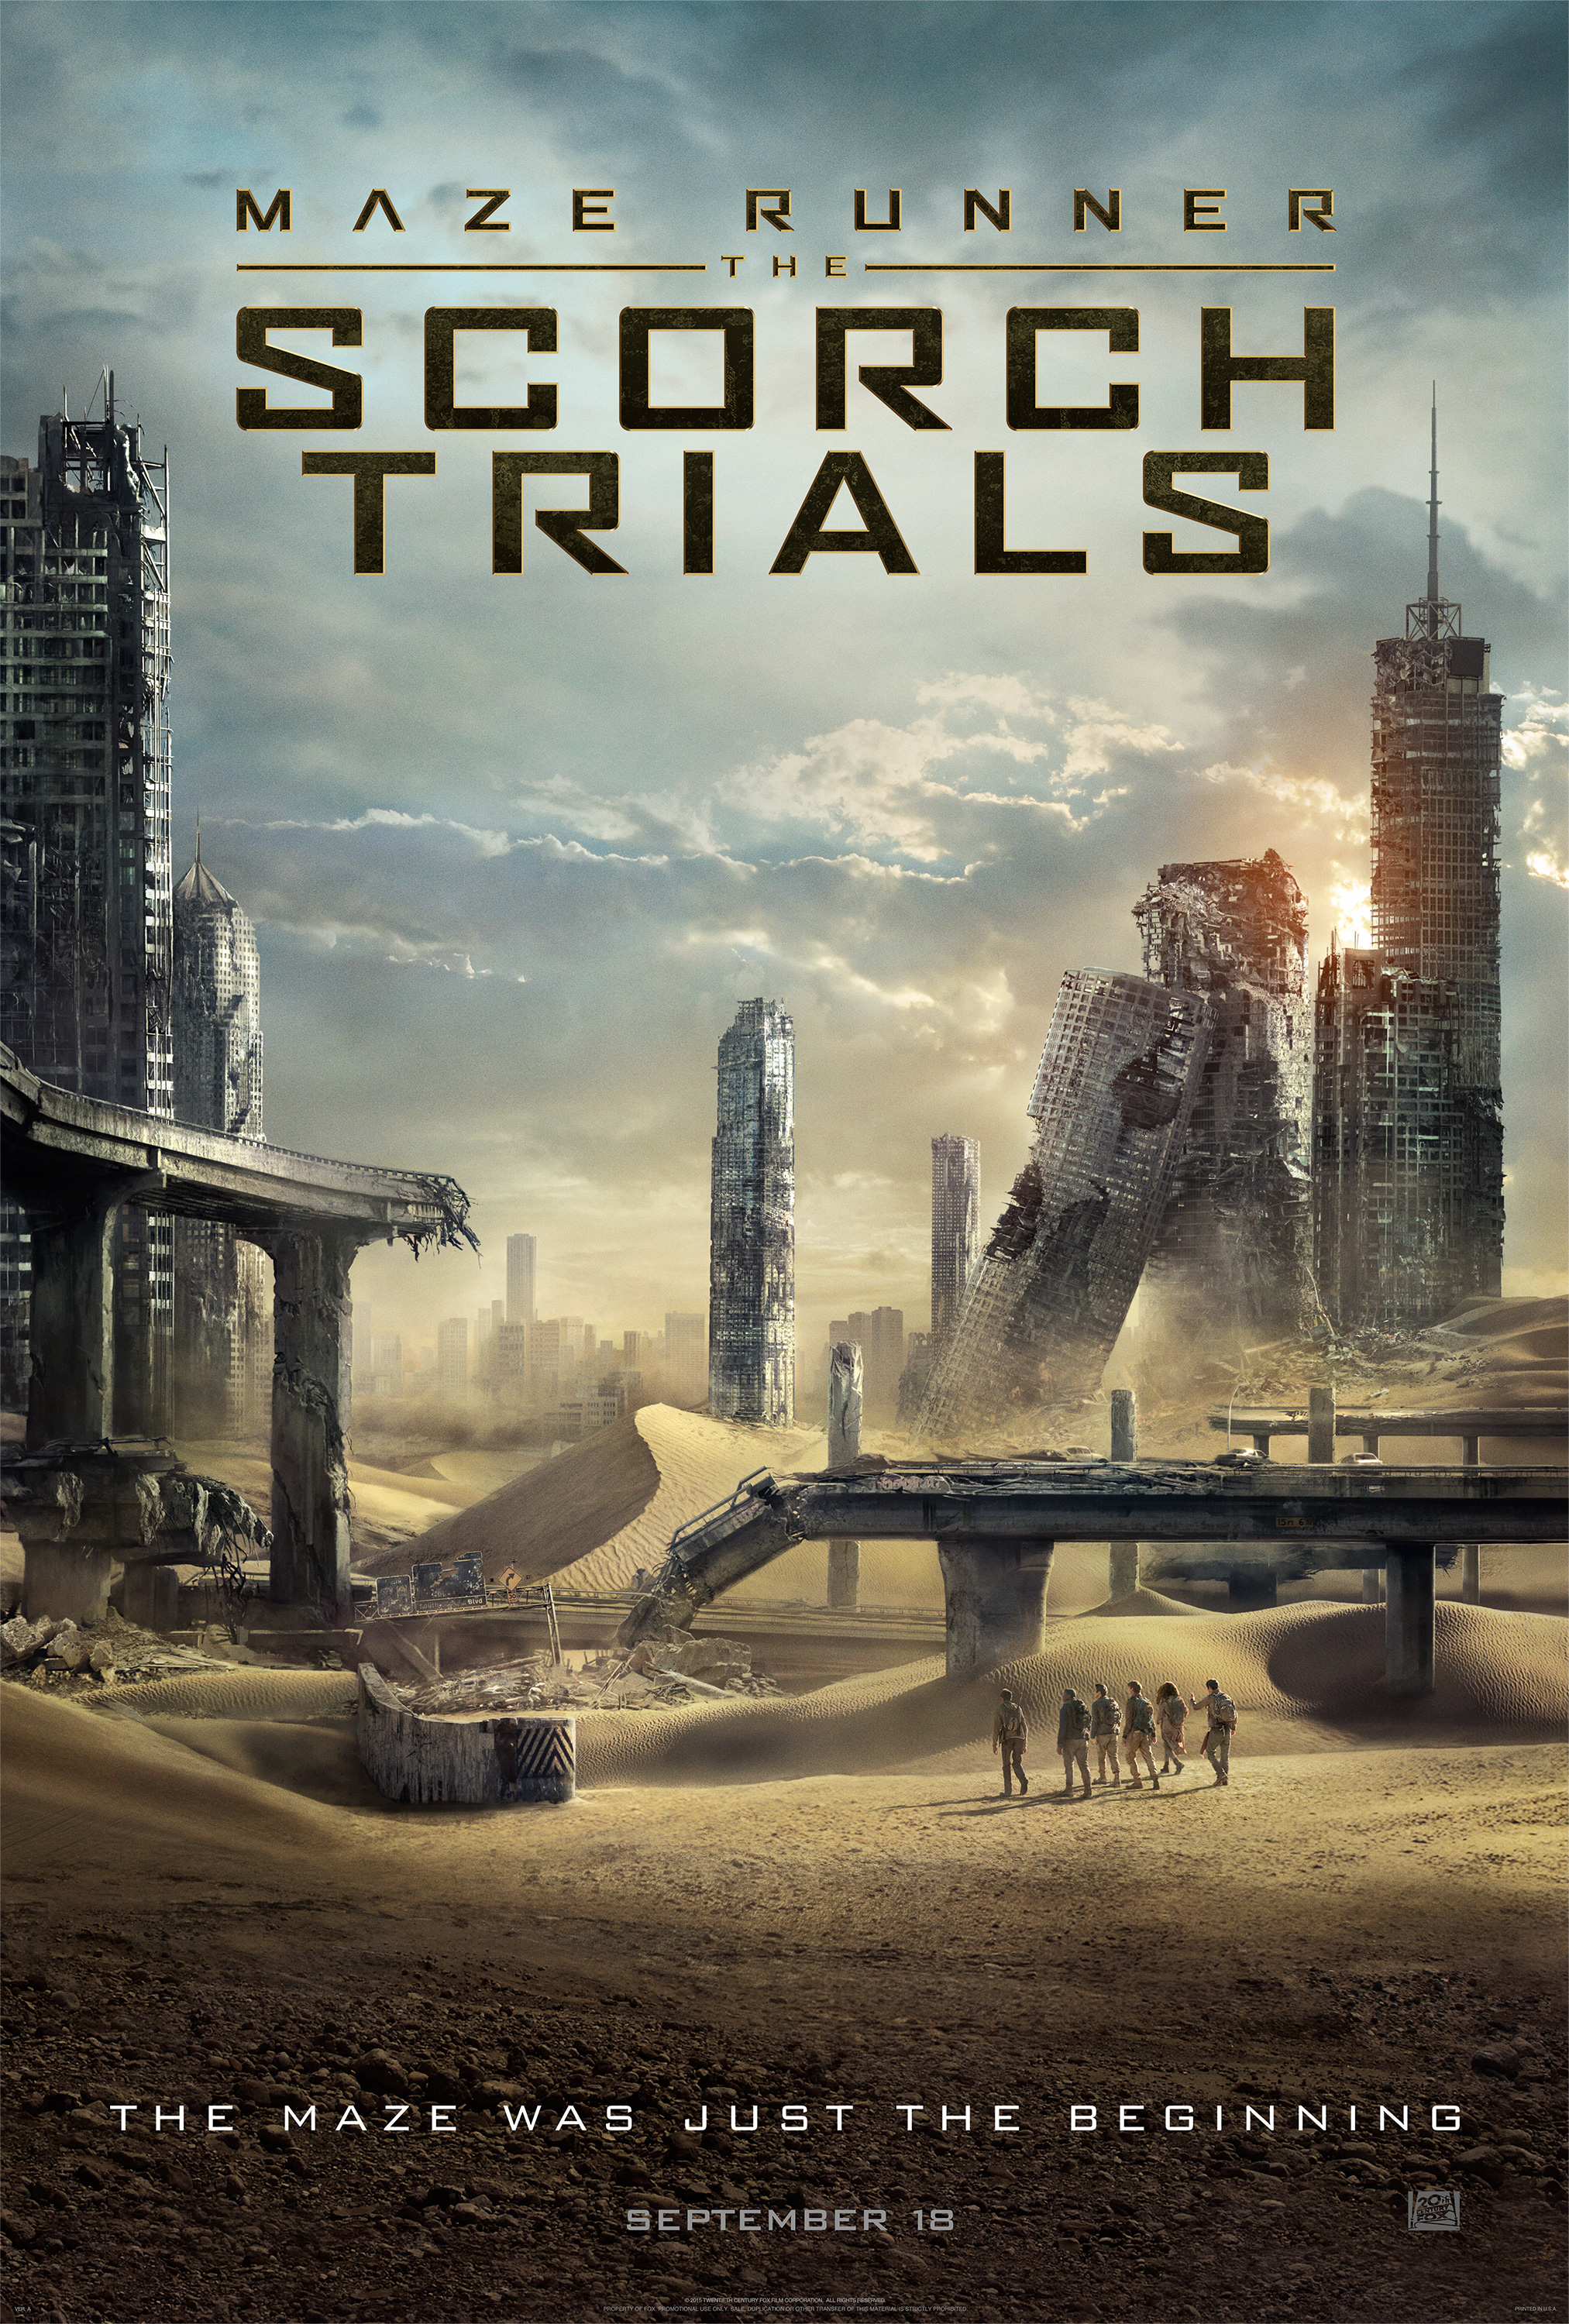 Maze Runner: The Scorch Trials (2015) Hindi Dubbed 720p HDRIp Esubs DL